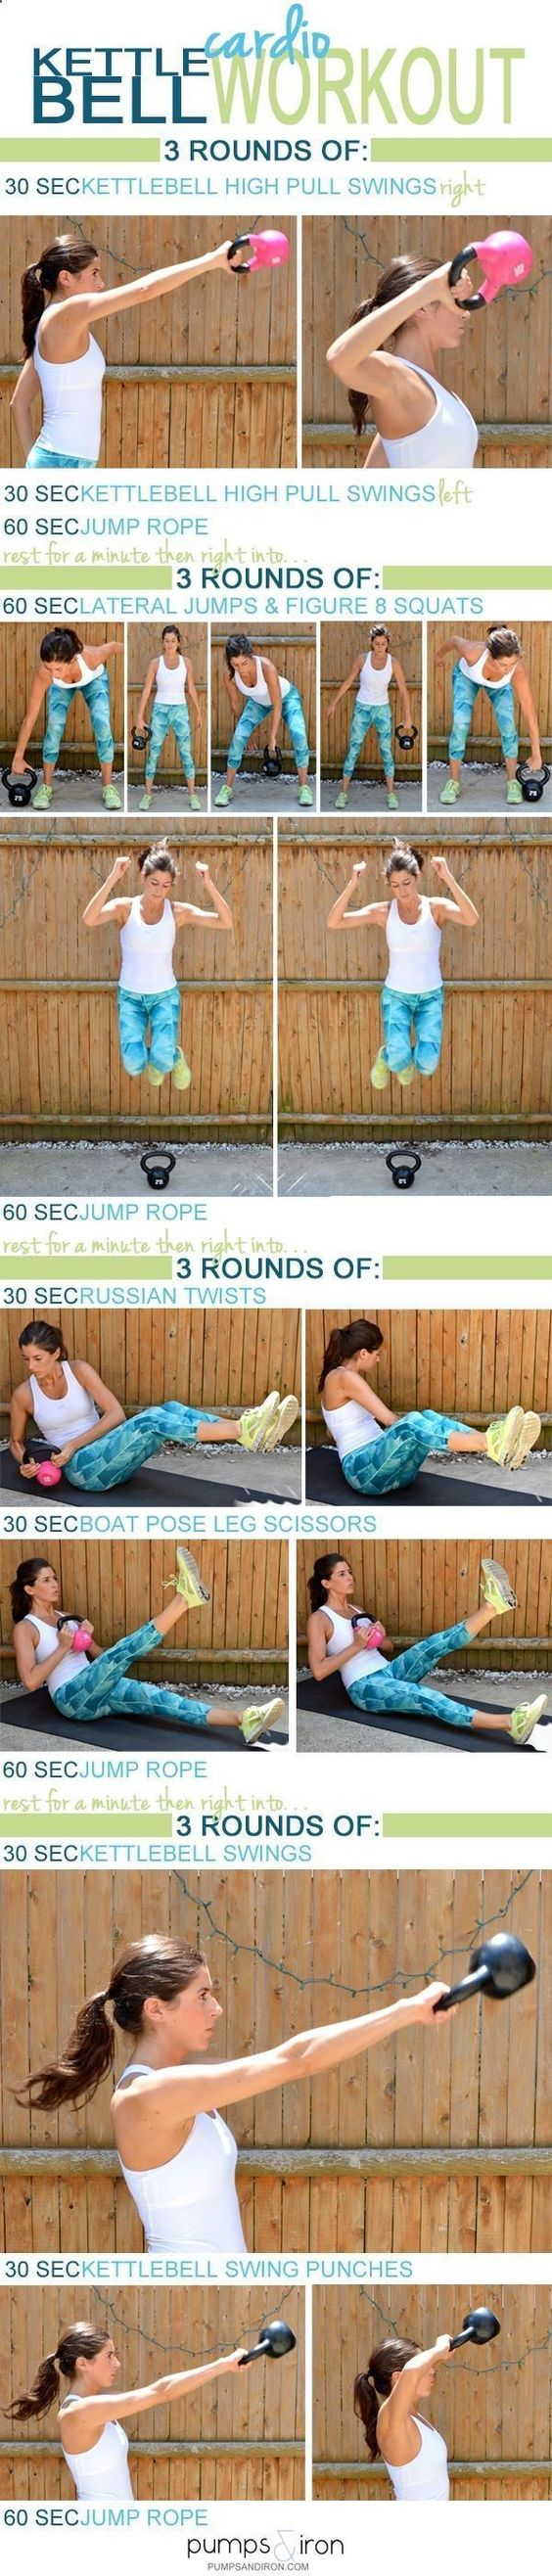 Kettlebell Cardio Workout -- takes 30 minutes and youll need a heavy and lighter kettlebell and jump rope   Posed By: AdvancedWeightLossTips.com #Cardioworkouts #KettlebellArmWorkout #cardioworkoutjumprope